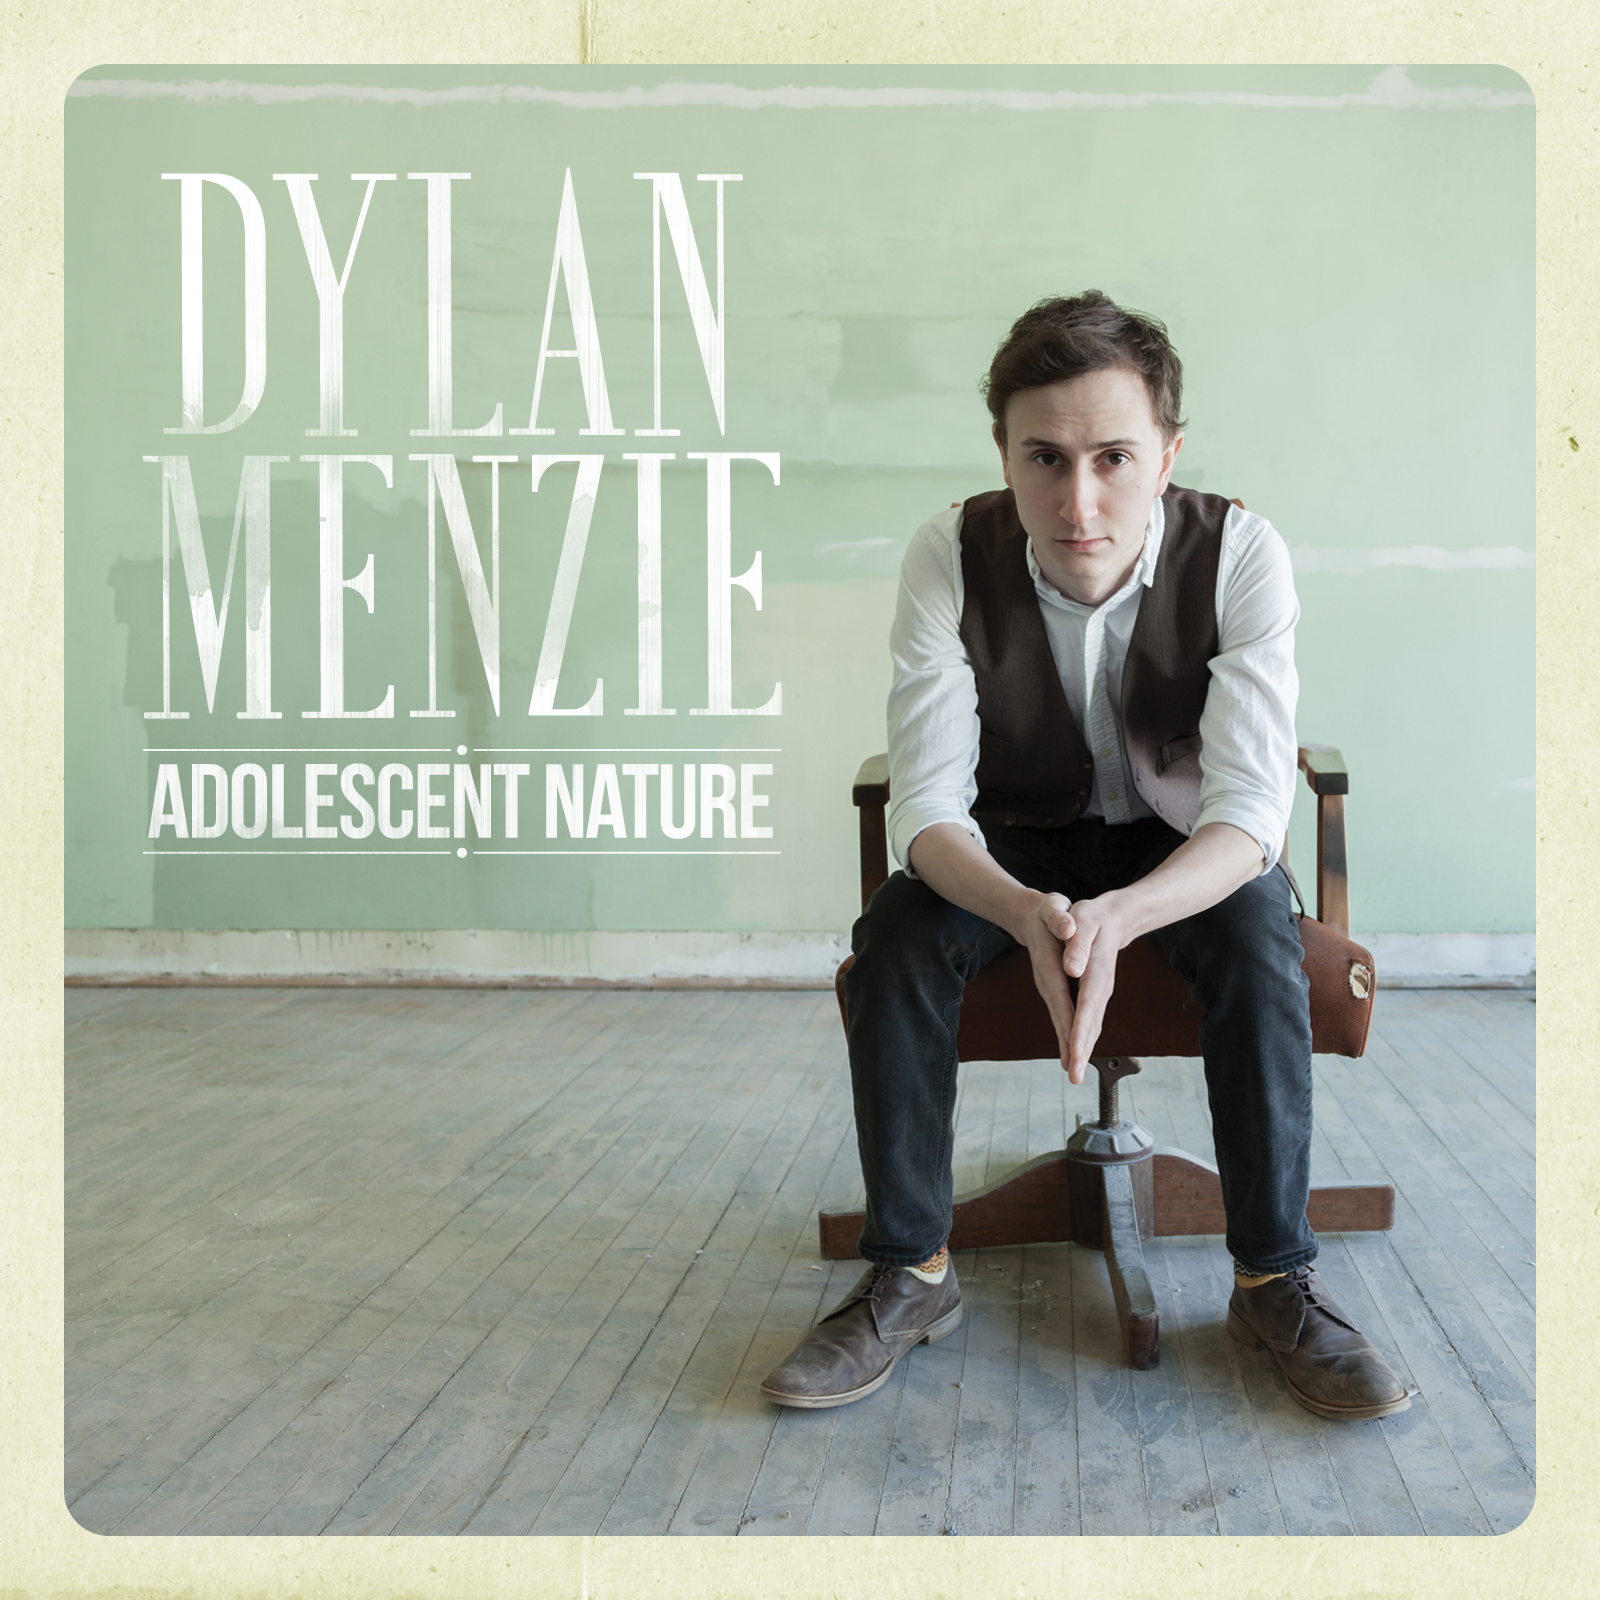 dylan menzie adolescent nature